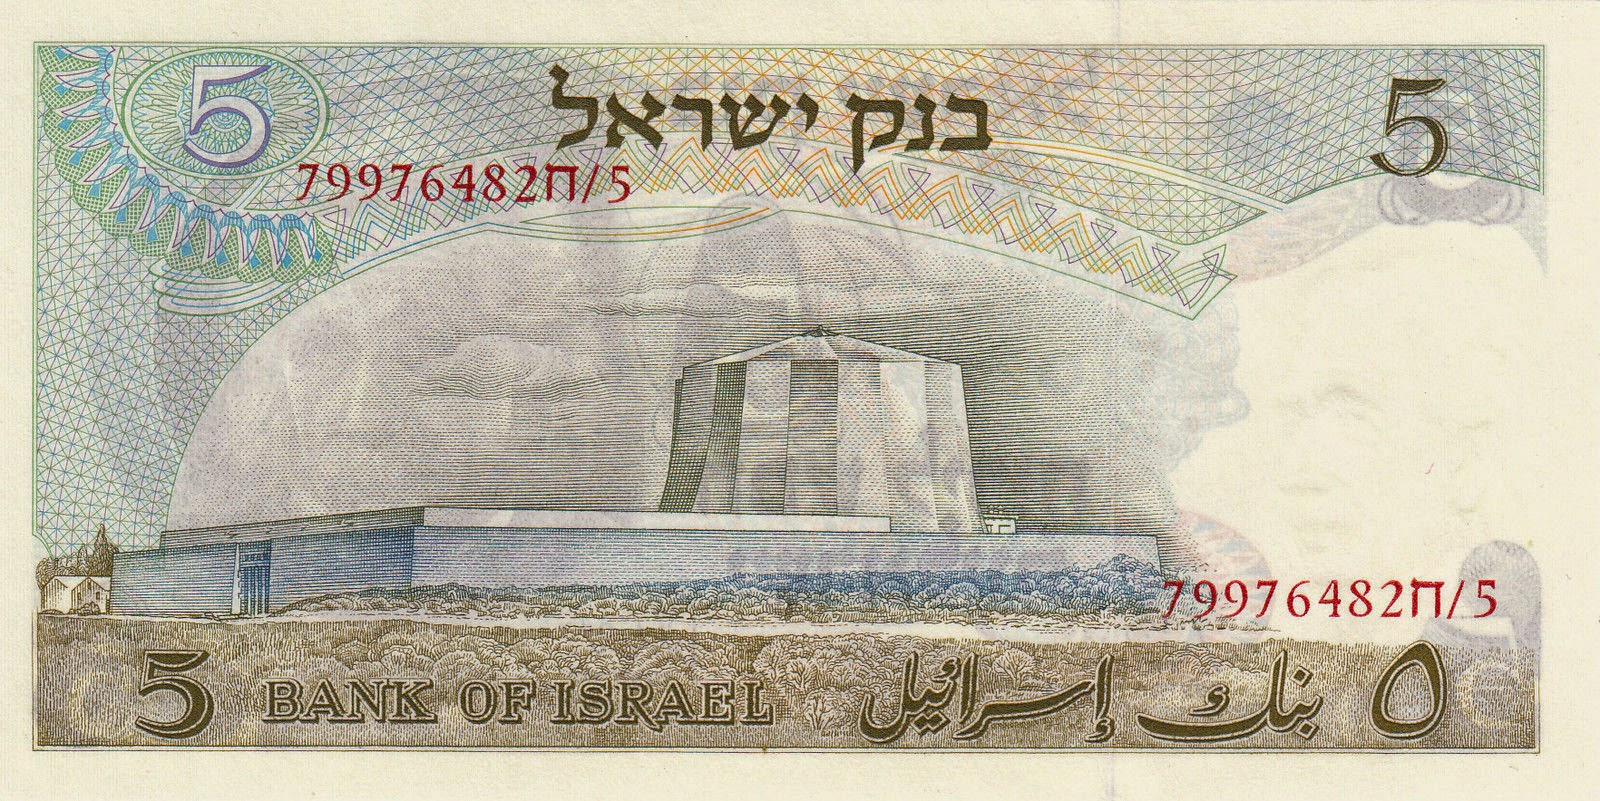 Israel Banknotes 5 Israeli Pounds 1968 Atomic reactor at Nahal Sorek